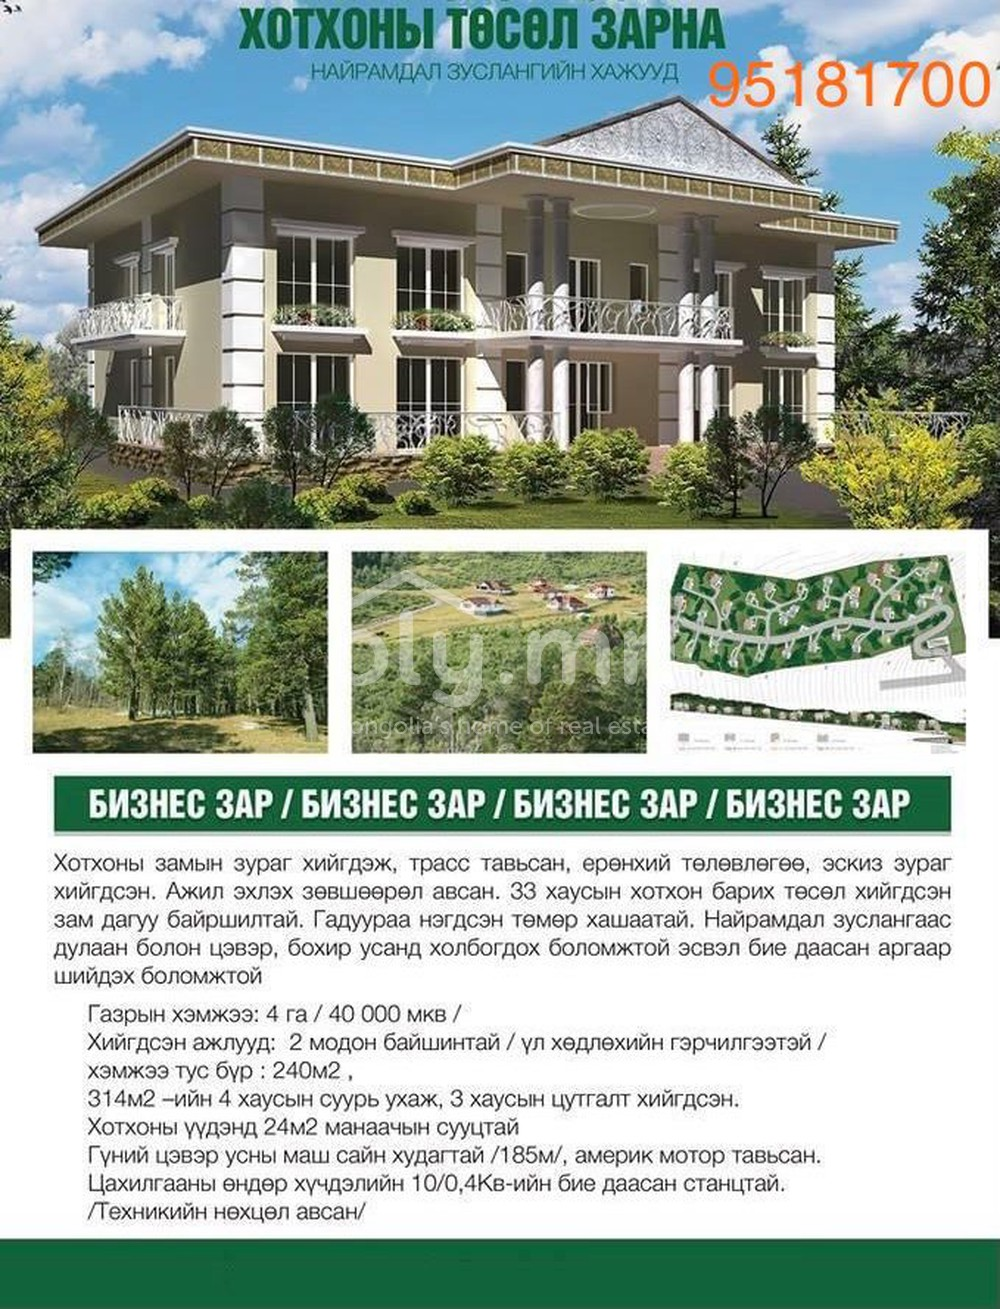 residential Land/Development for sale зар #: 10589 1